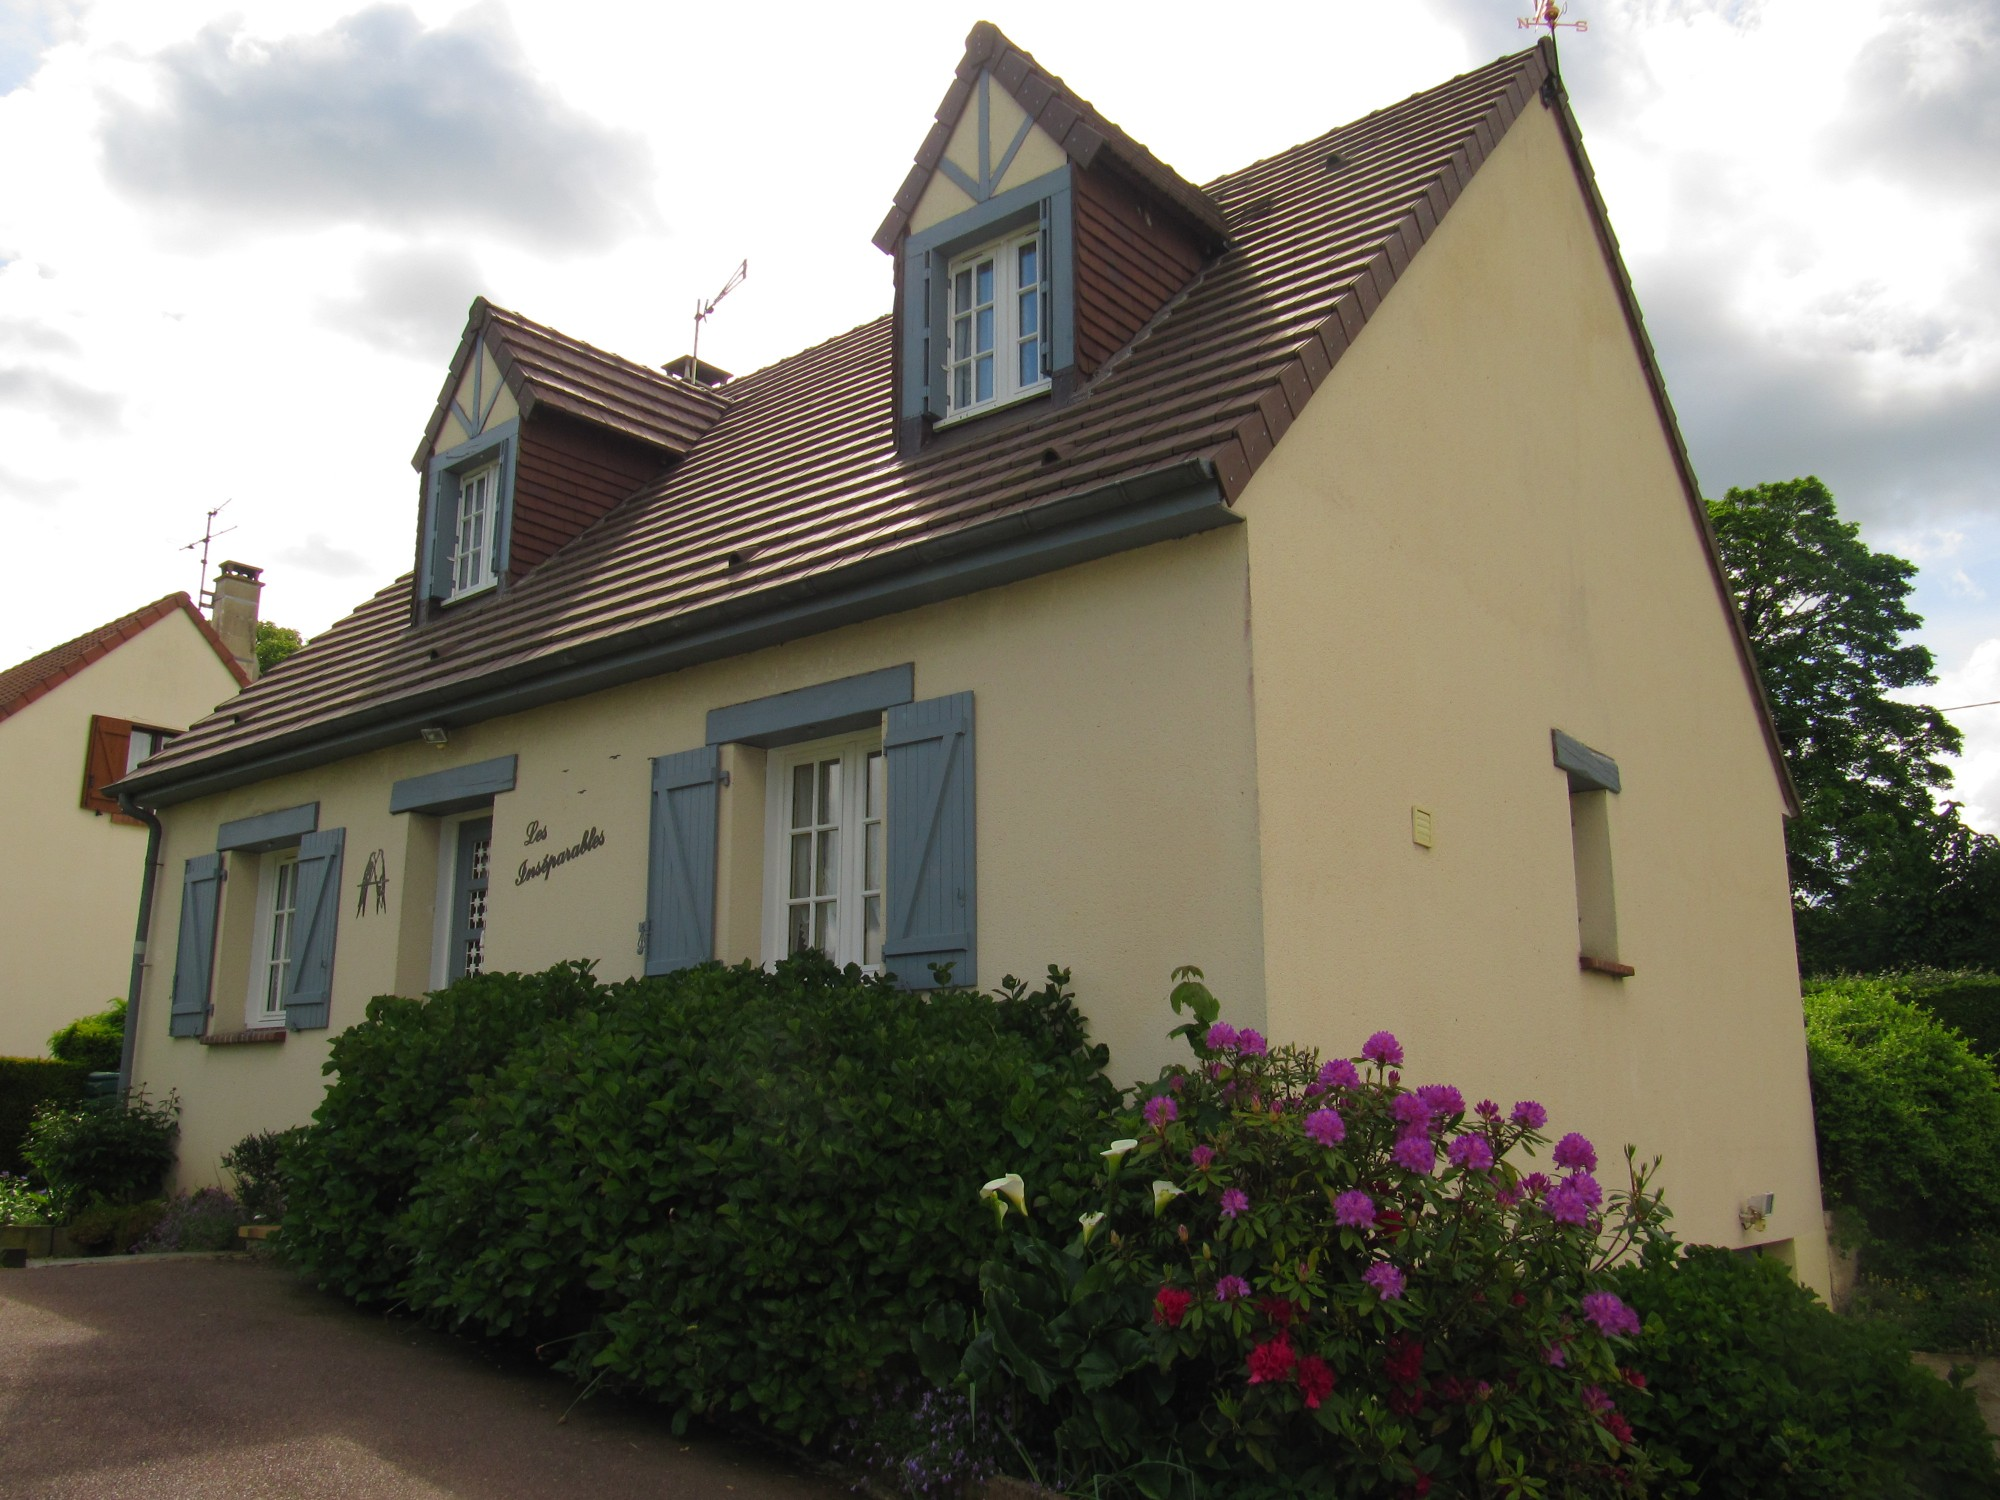 Lisieux ventes maison traditionnelle lisieux normandie for Maison traditionnelle